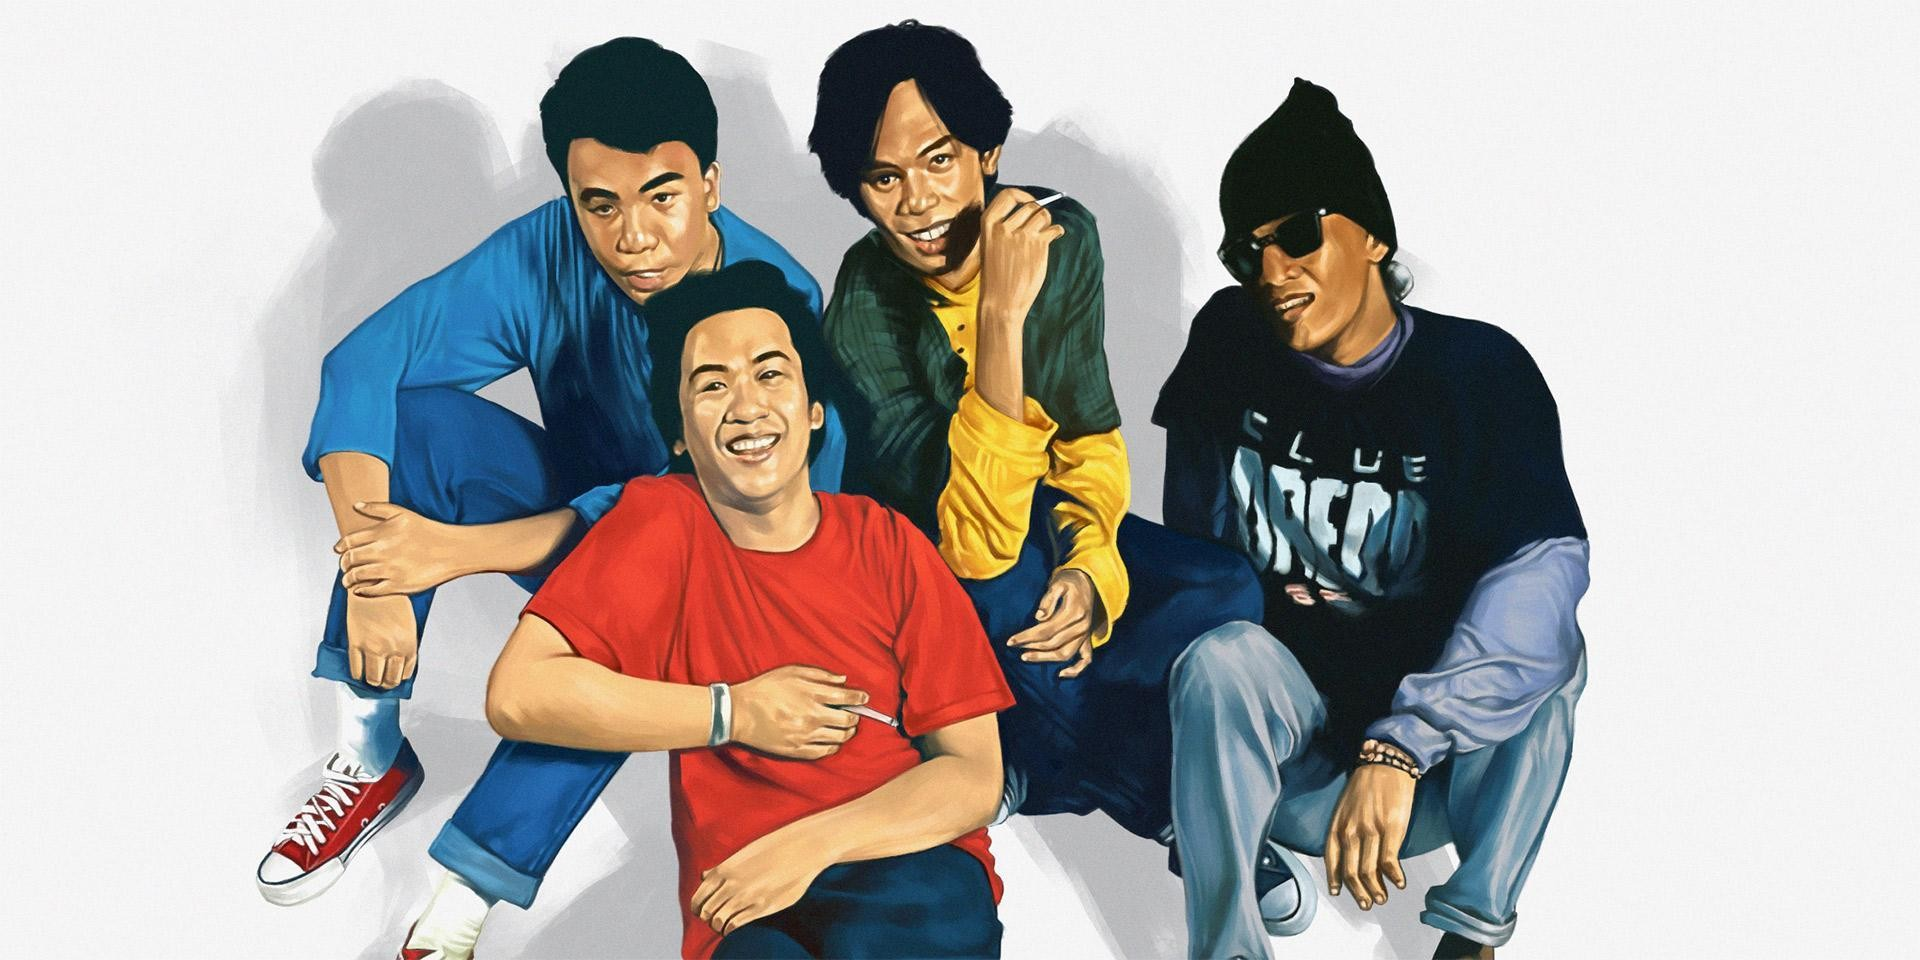 Every album by the Eraserheads, ranked